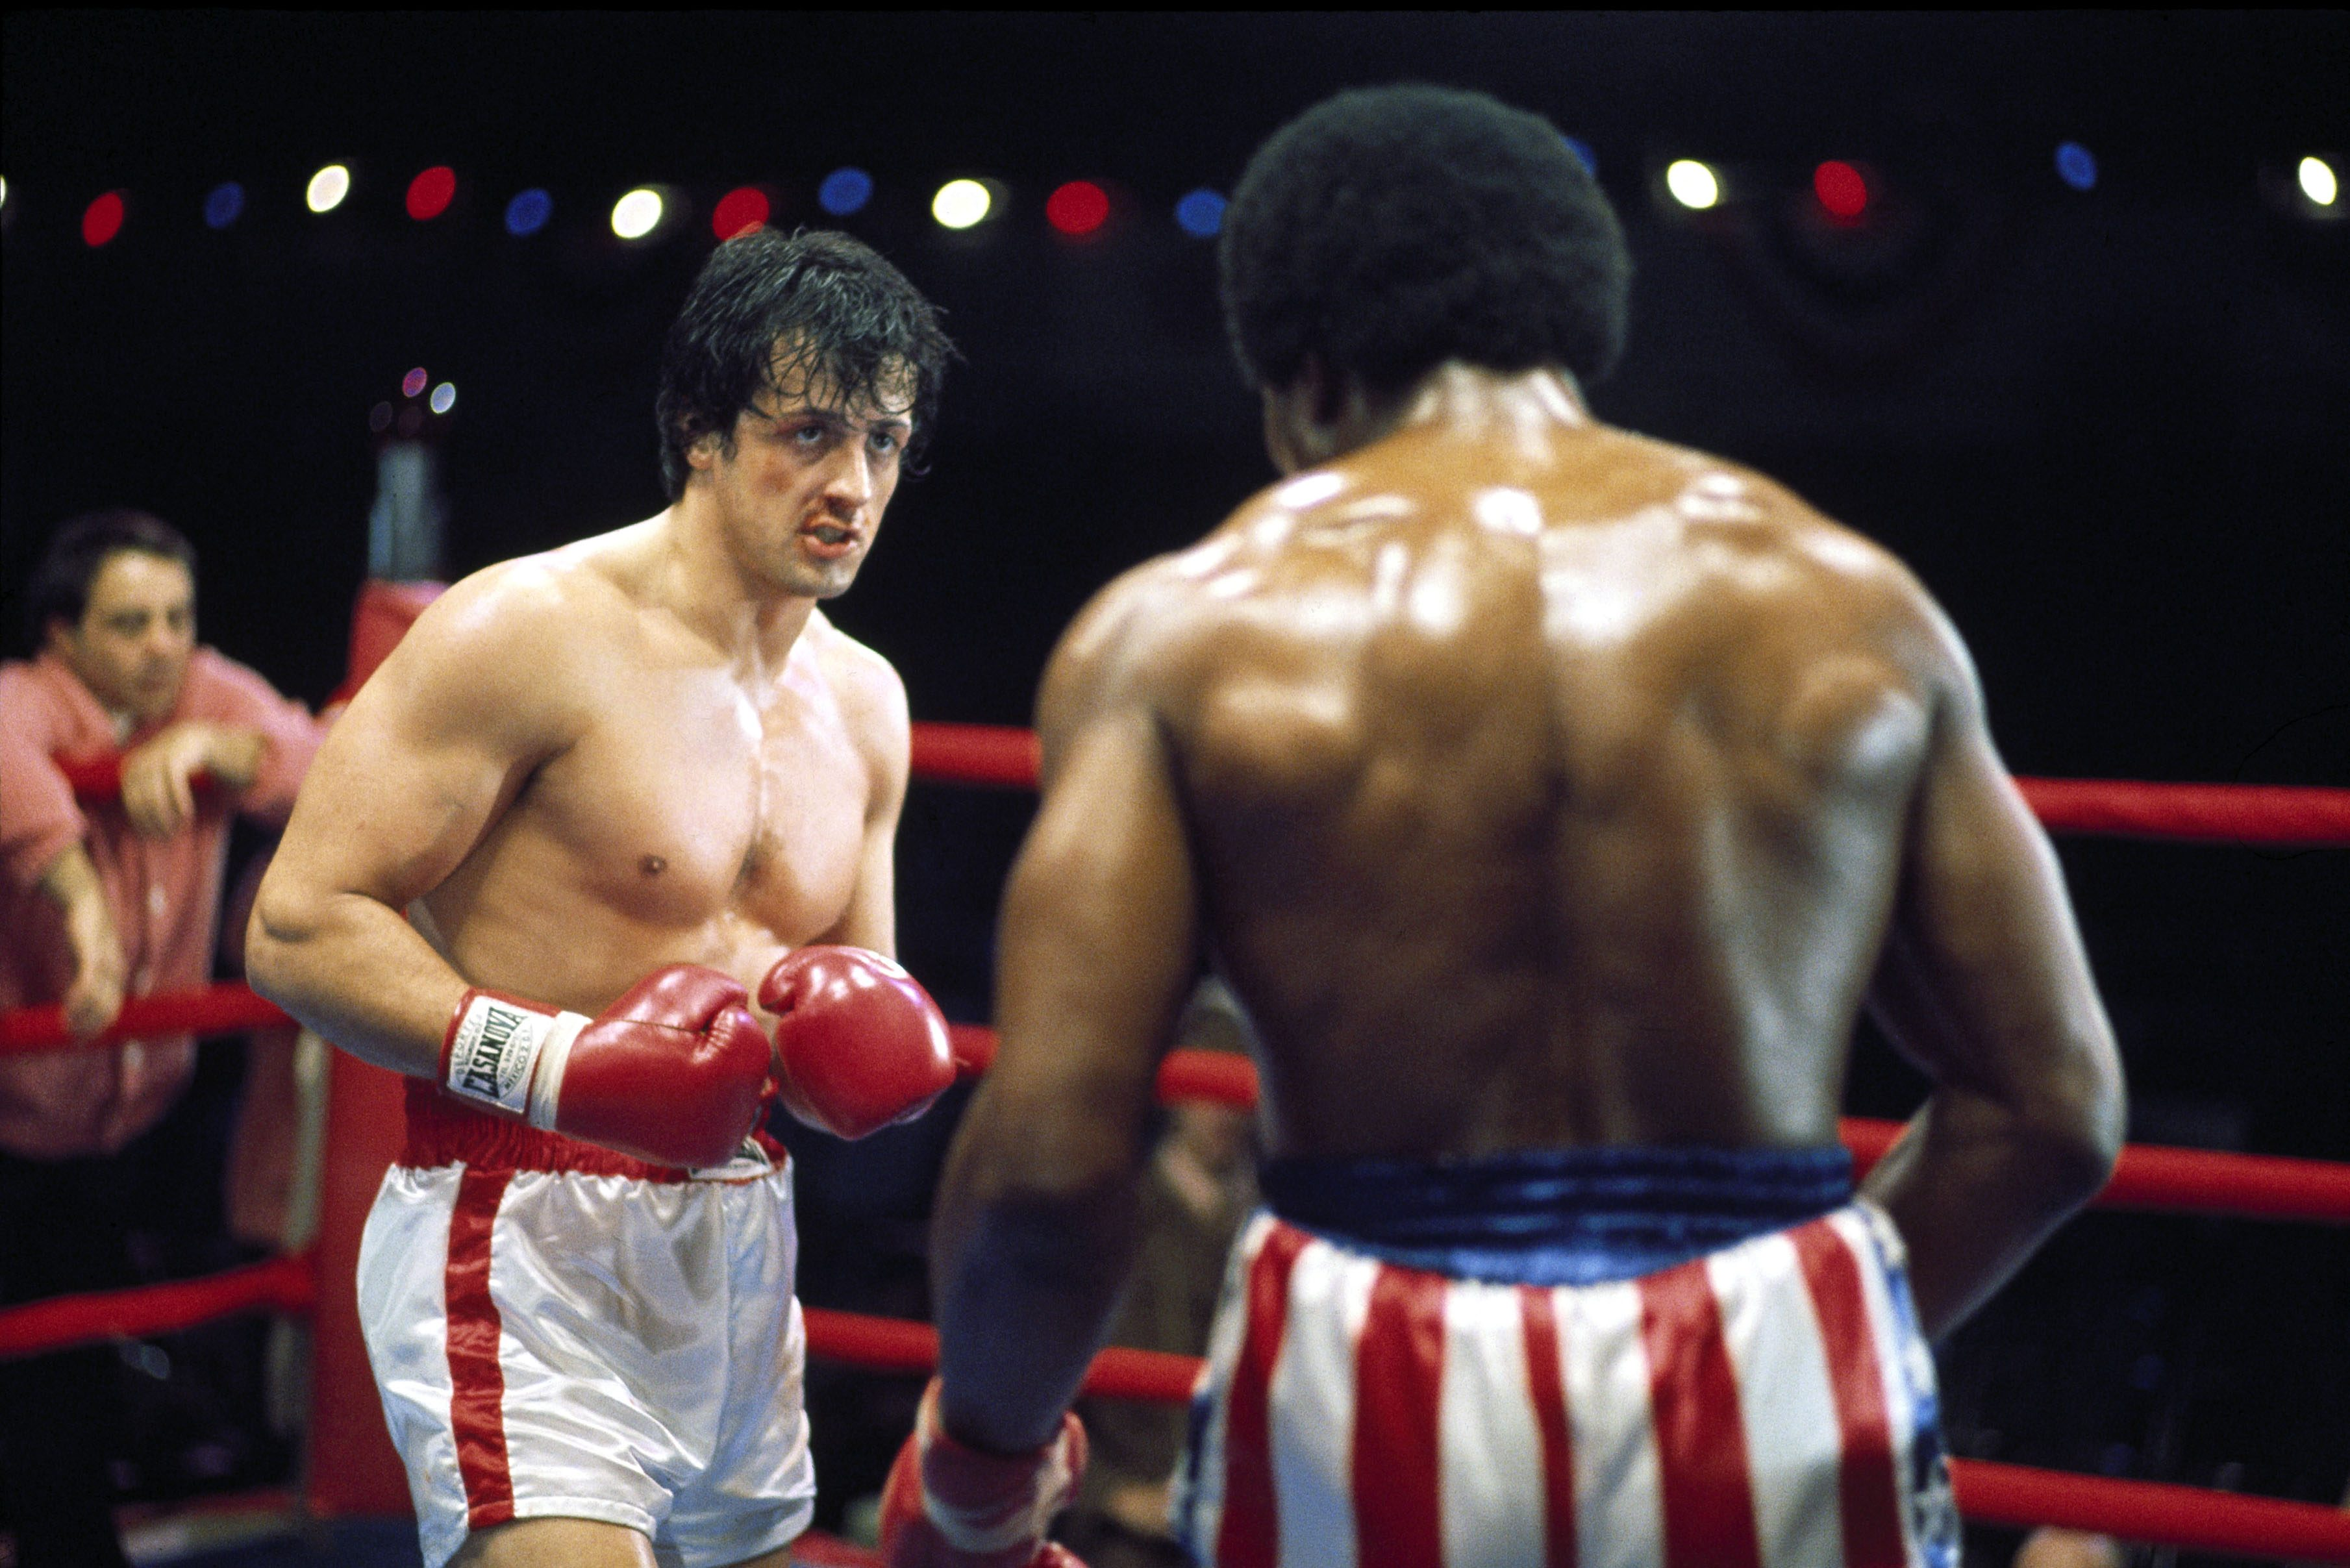 Editorial use only. No book cover usage. Mandatory Credit: Photo by United Artists/Kobal/Shutterstock (5885065x) Sylvester Stallone, Carl Weathers Rocky - 1976 Director: John Avildsen United Artists USA Scene Still